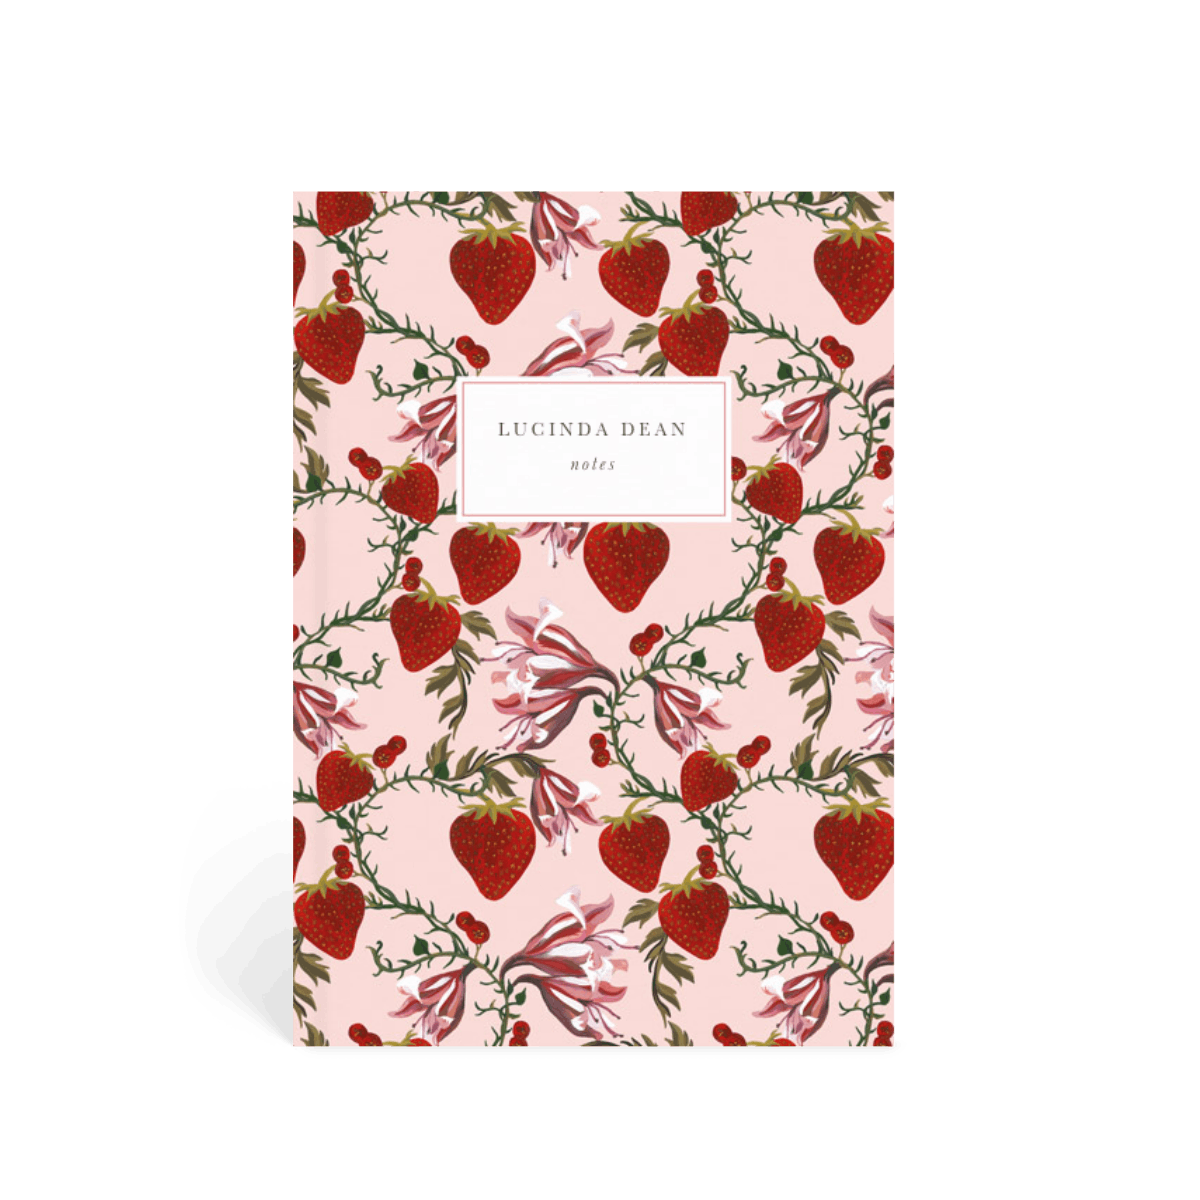 Https%3a%2f%2fwww.papier.com%2fproduct image%2f54092%2f25%2fstrawberry floral 13012 front 1542292164.png?ixlib=rb 1.1